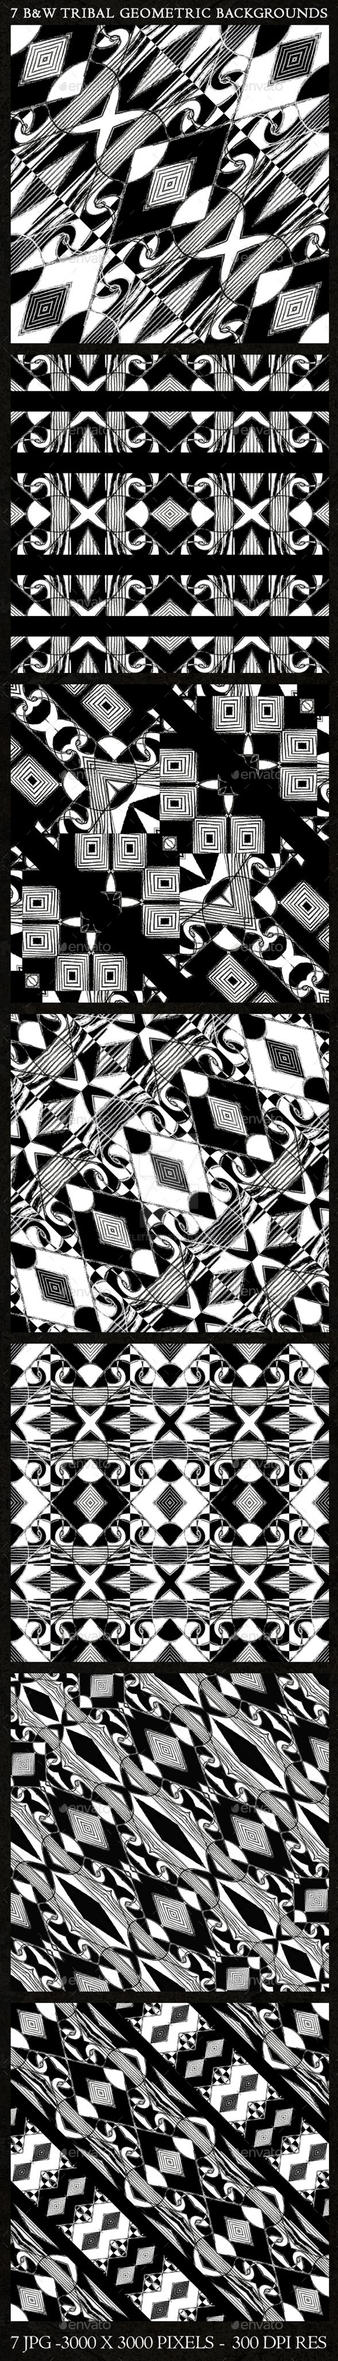 7 Black and White Tribal Geometric Backgrounds by danfleites